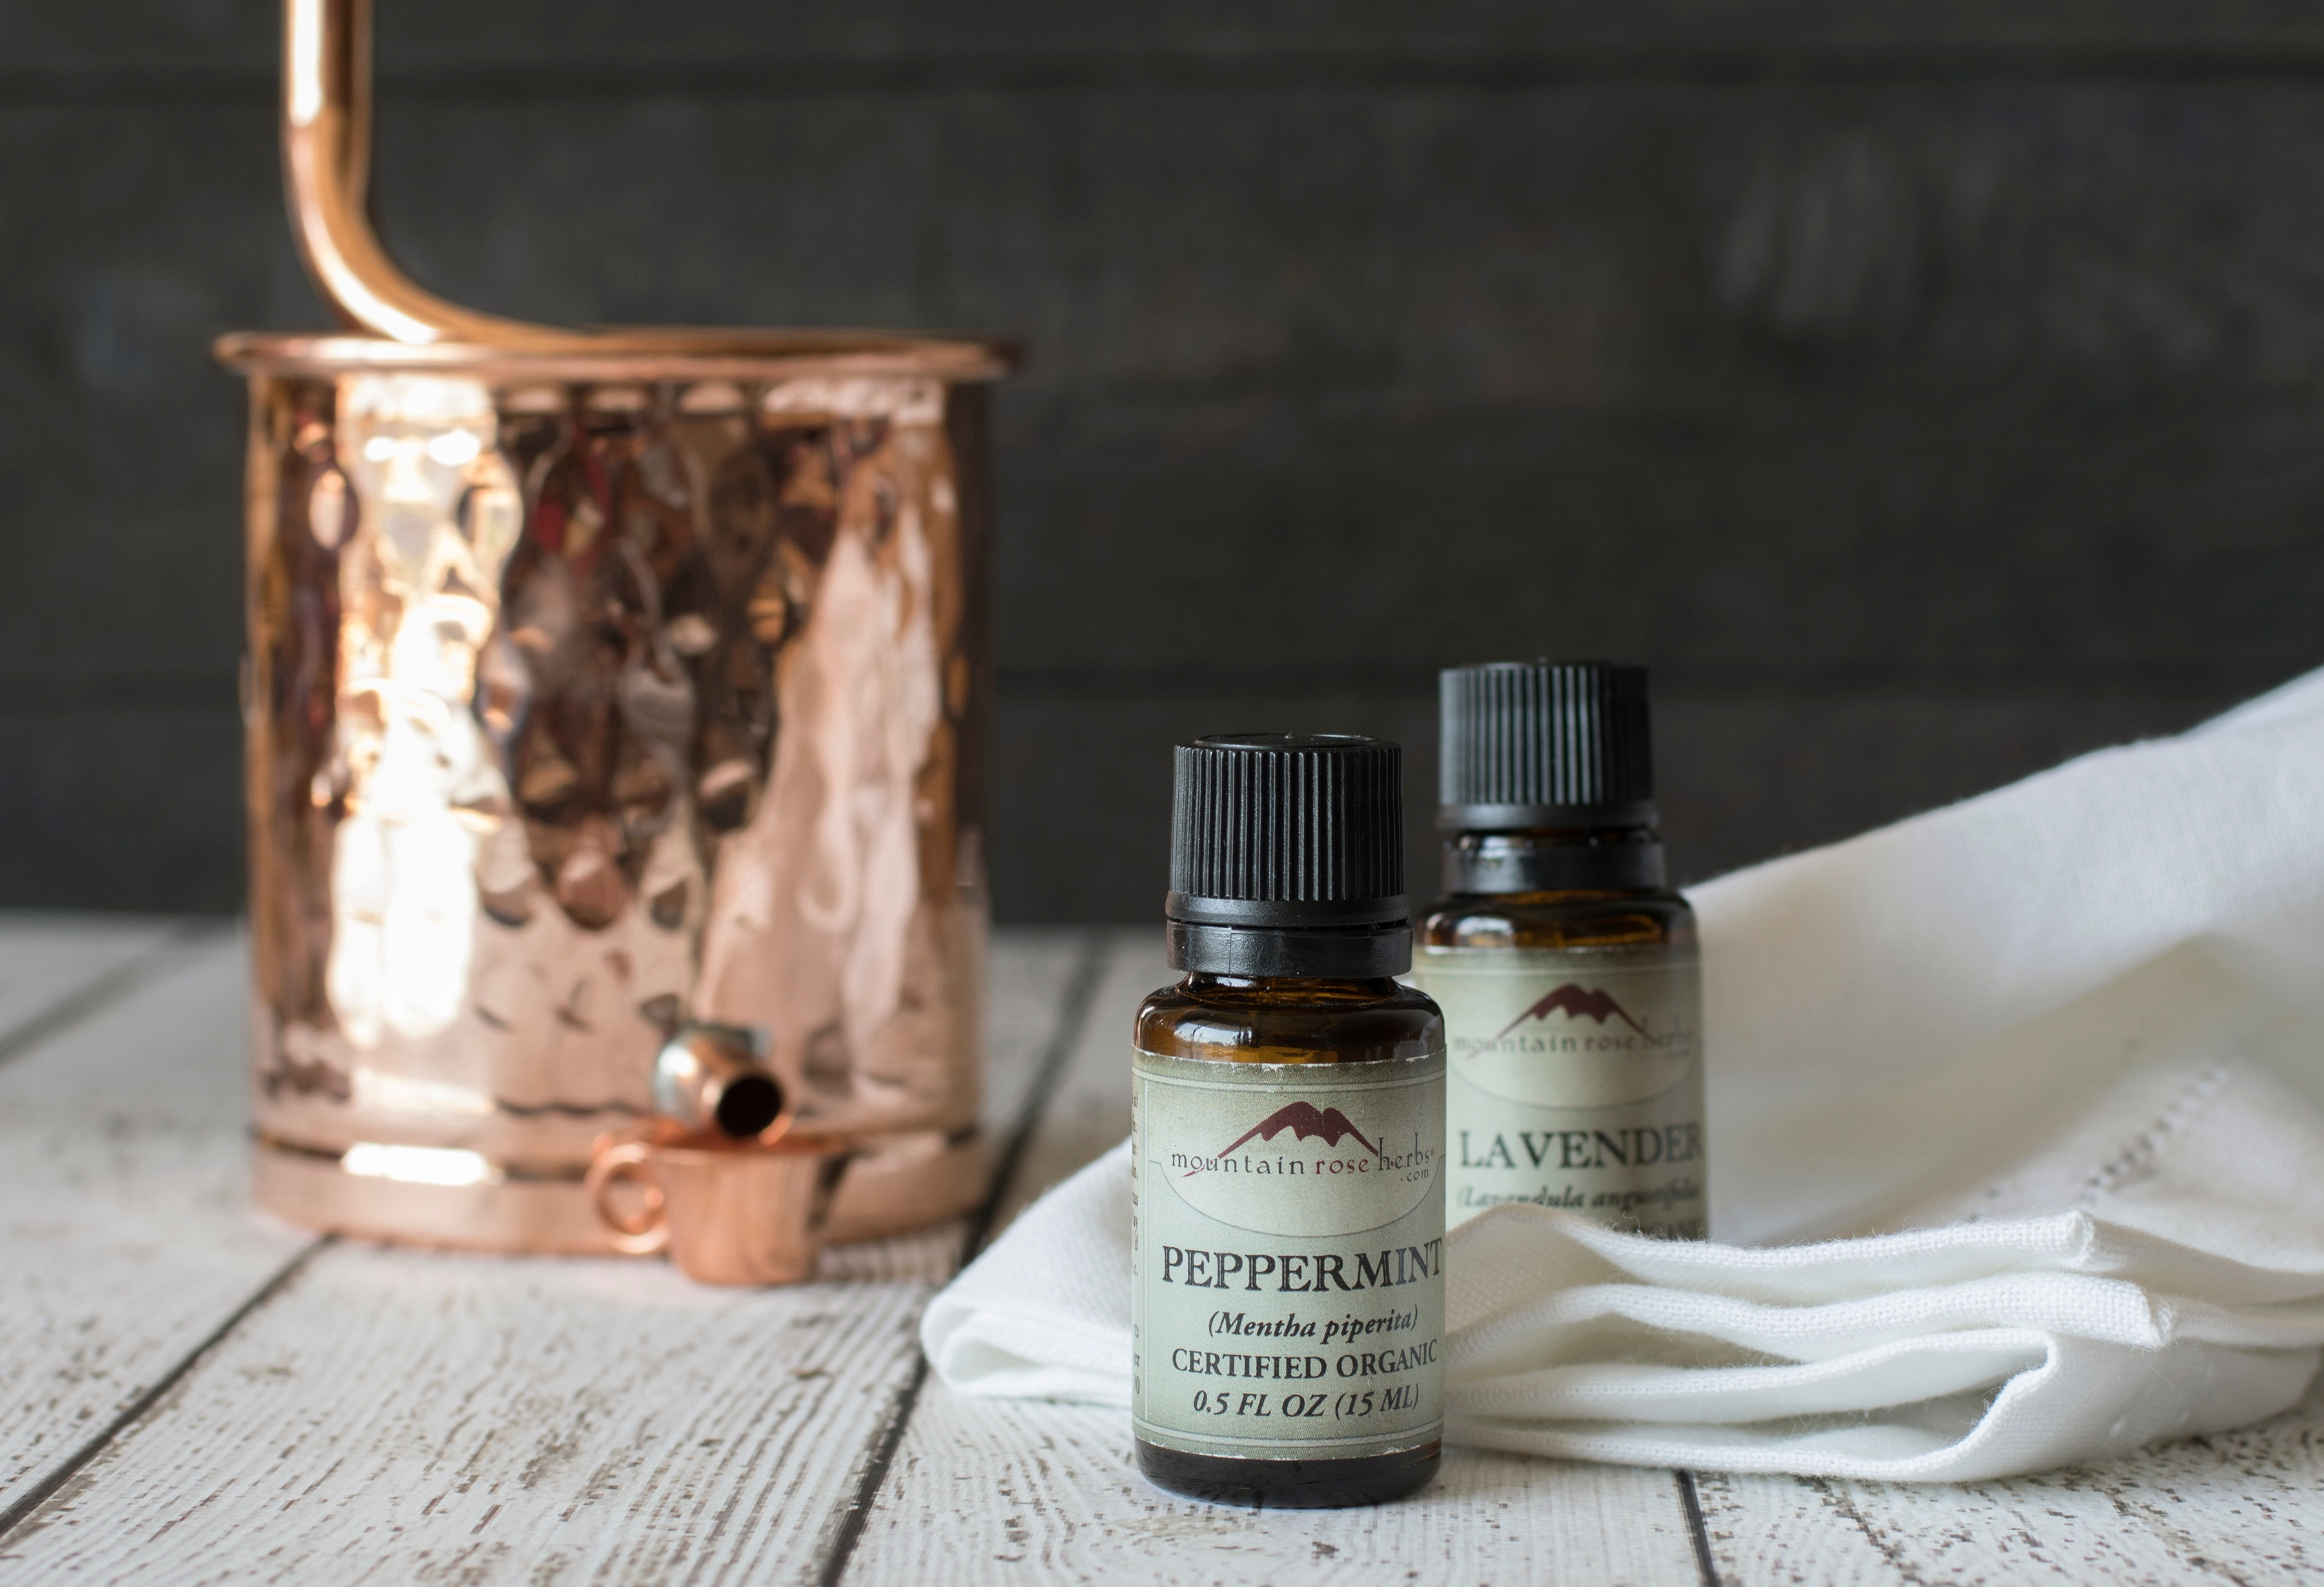 Small bottle of peppermint essential oil sitting next to a copper still on a wooden table